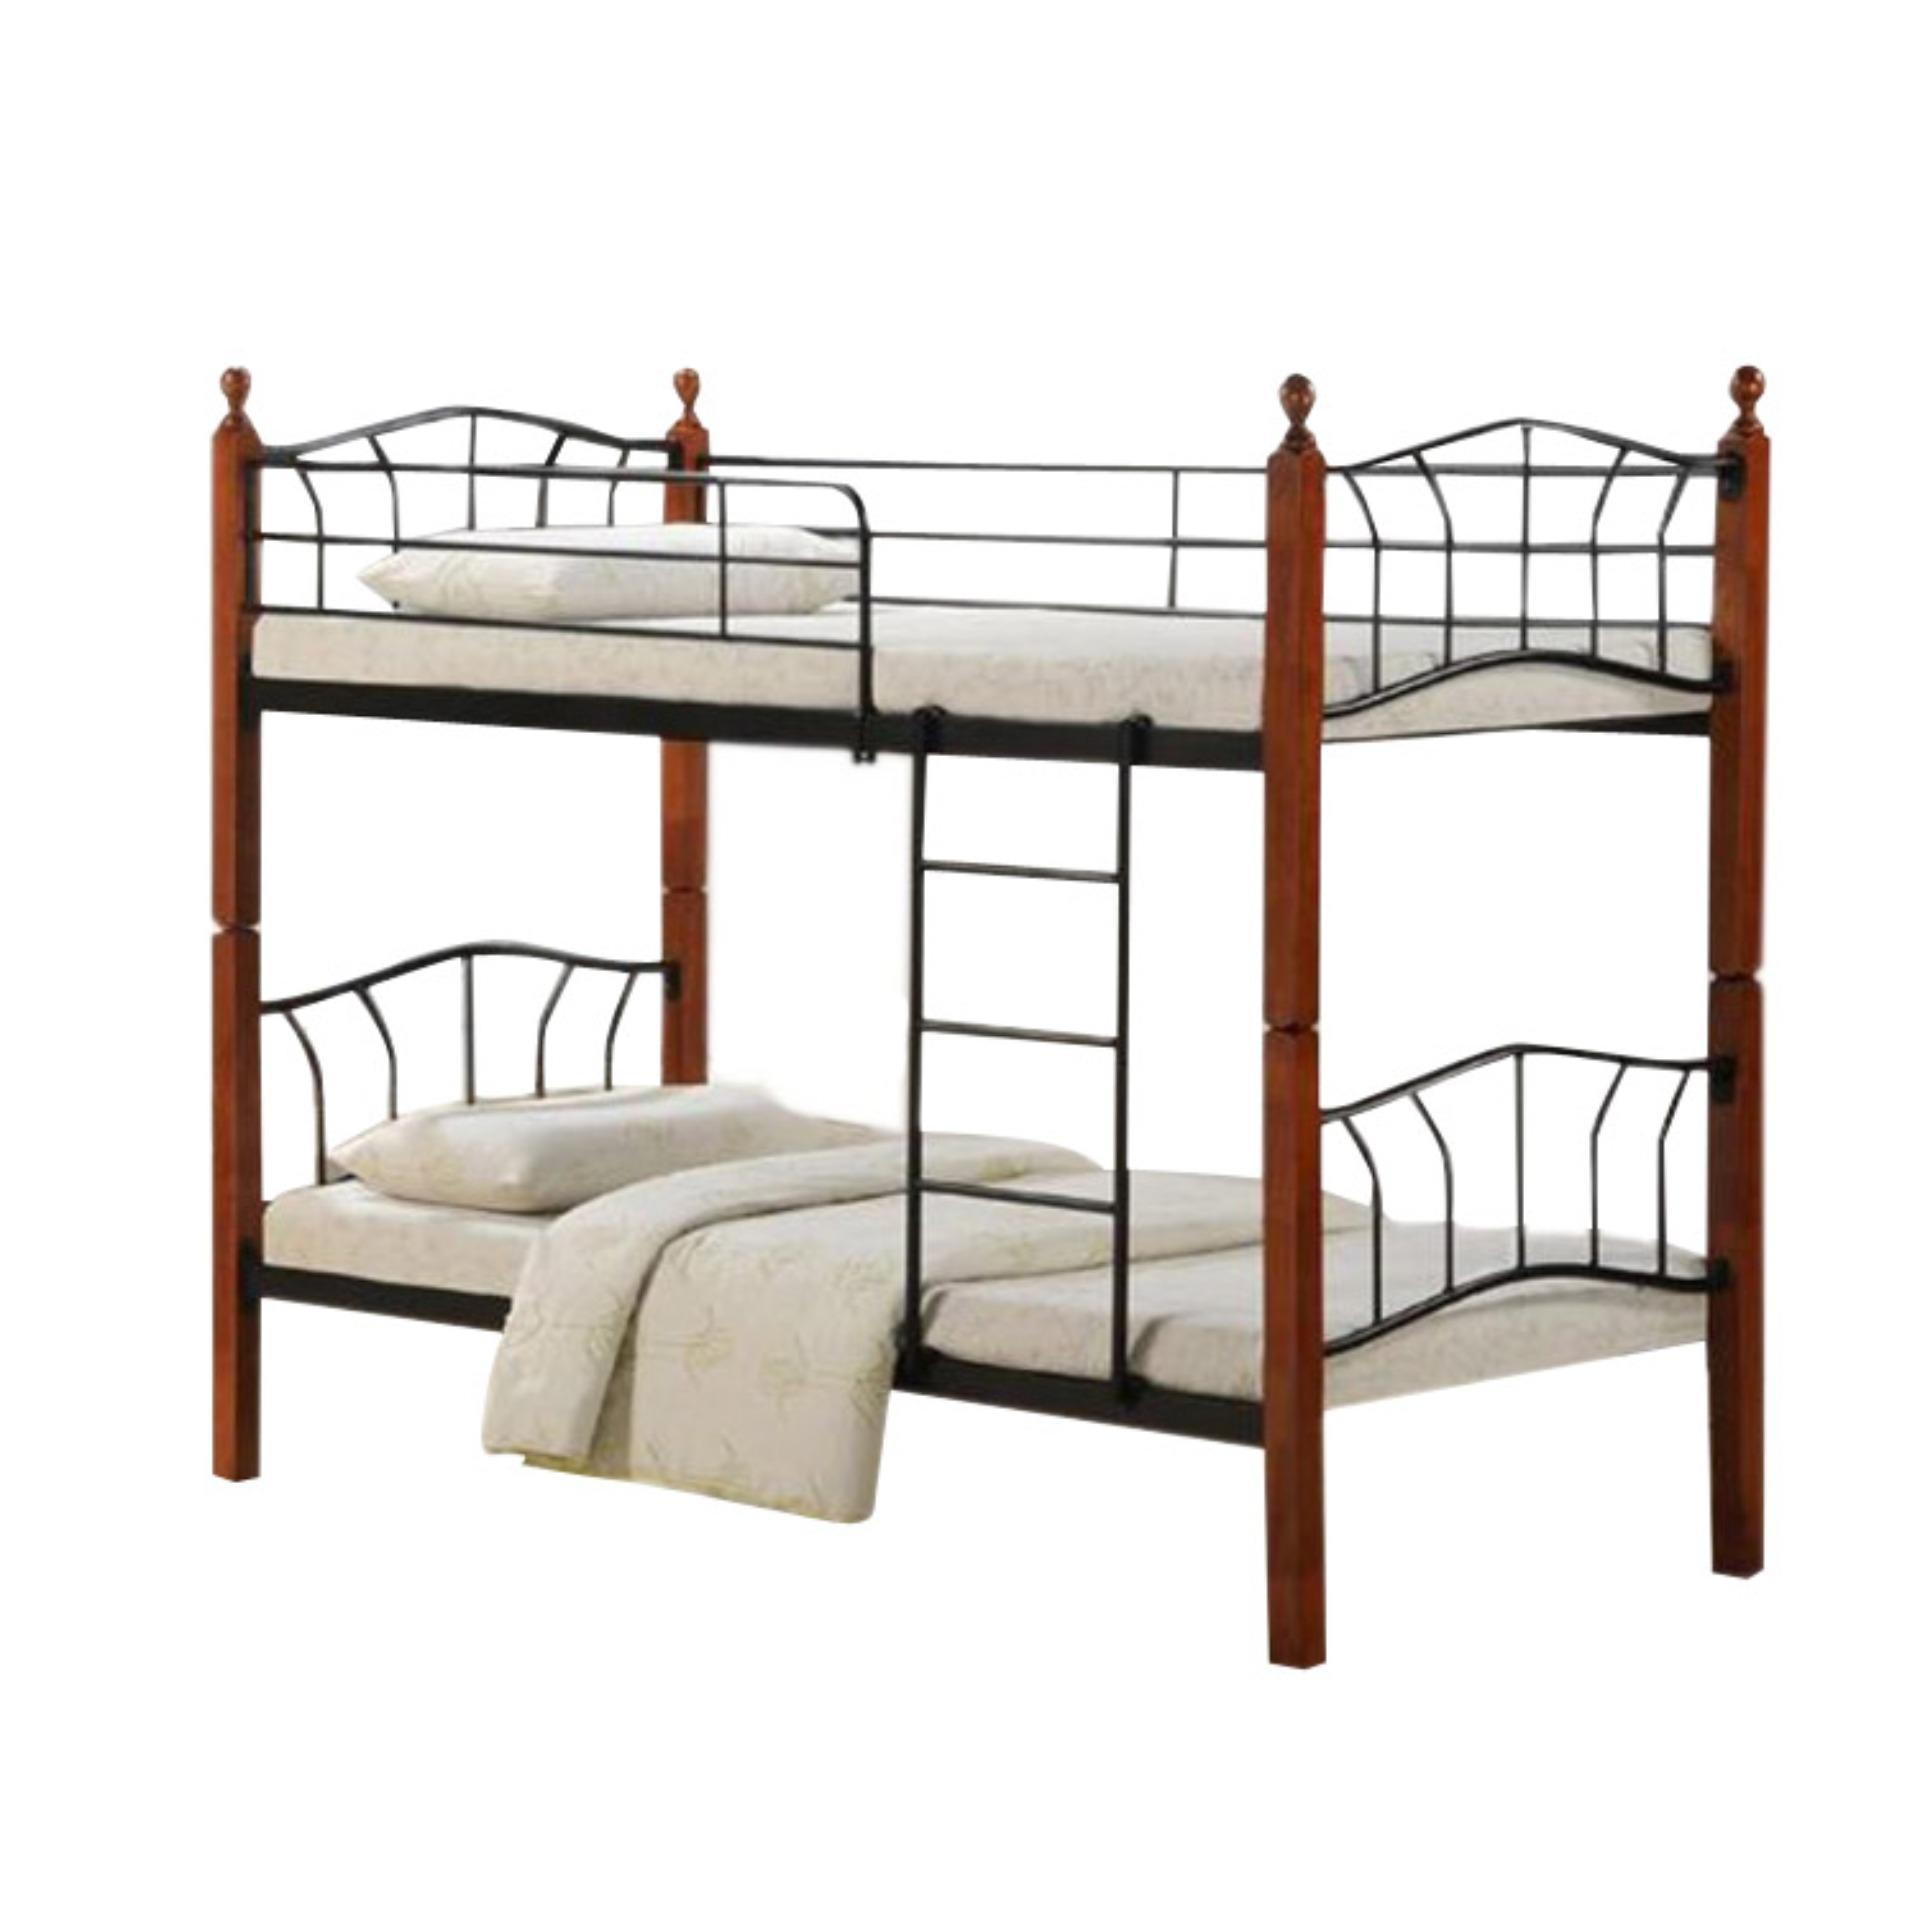 Longlife Nv13888dd Double Deck Bed Frame Only 36 X 75 Brown